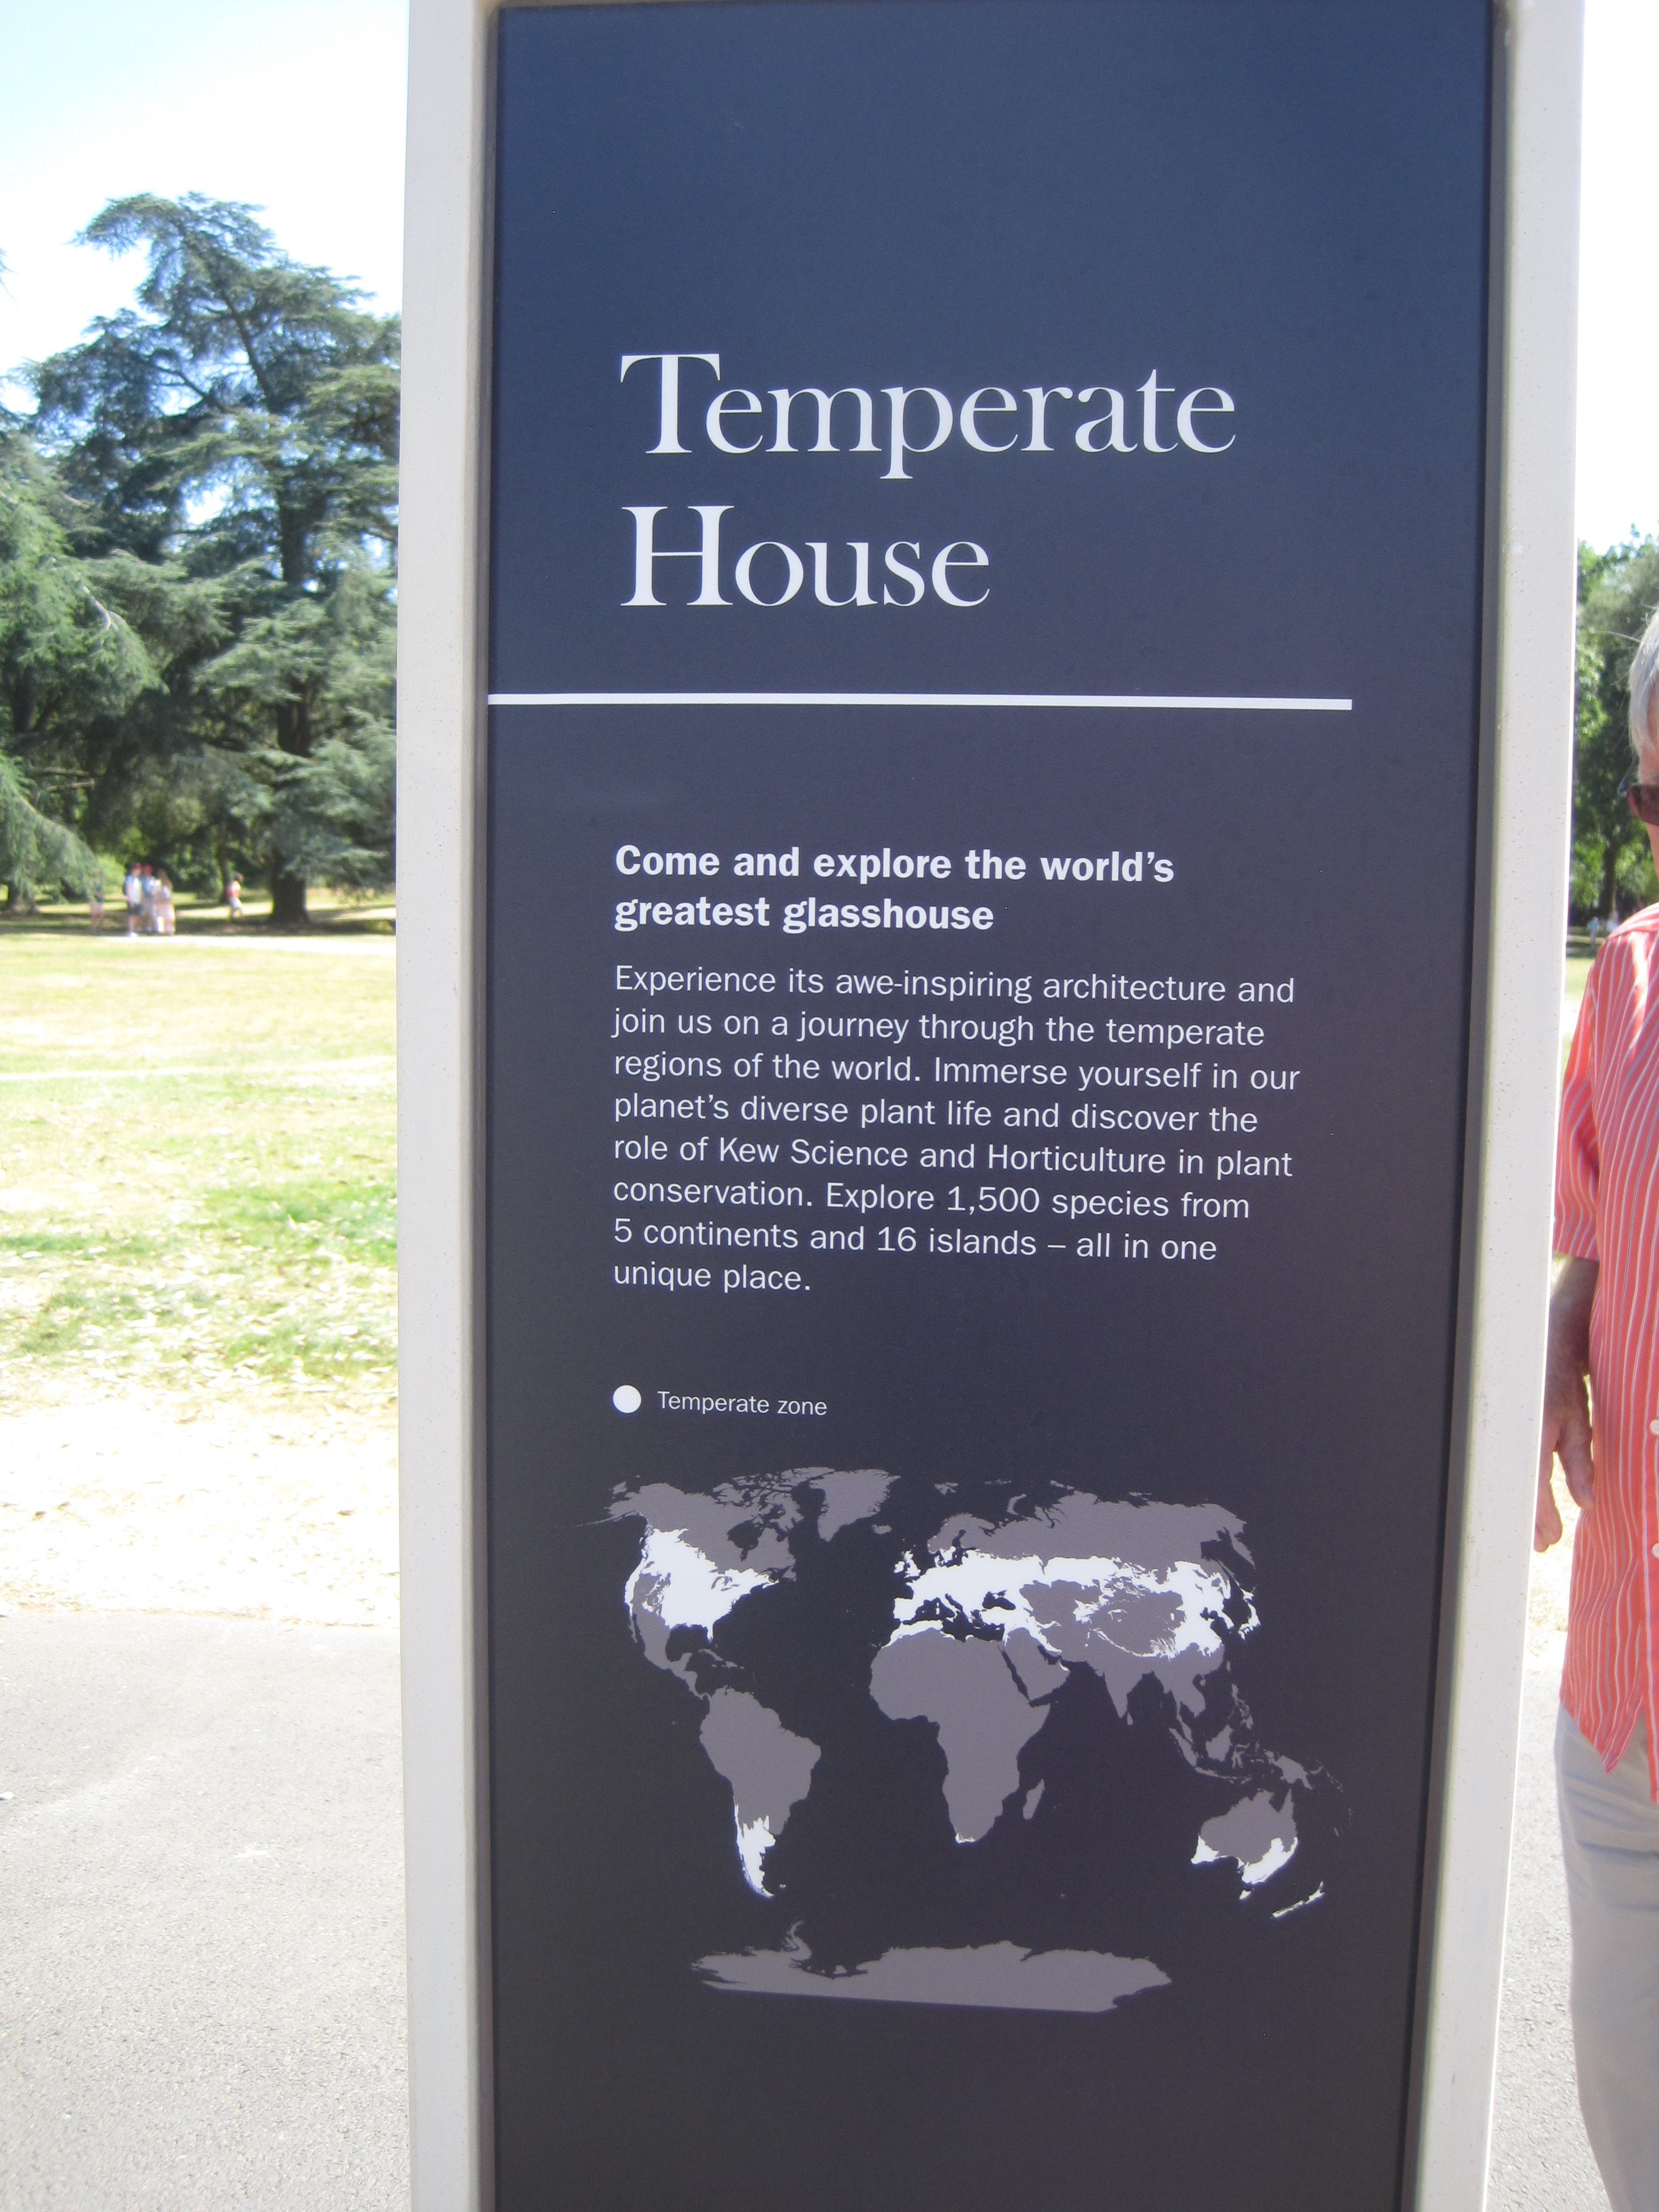 Temperate House - photo by Juliamaud